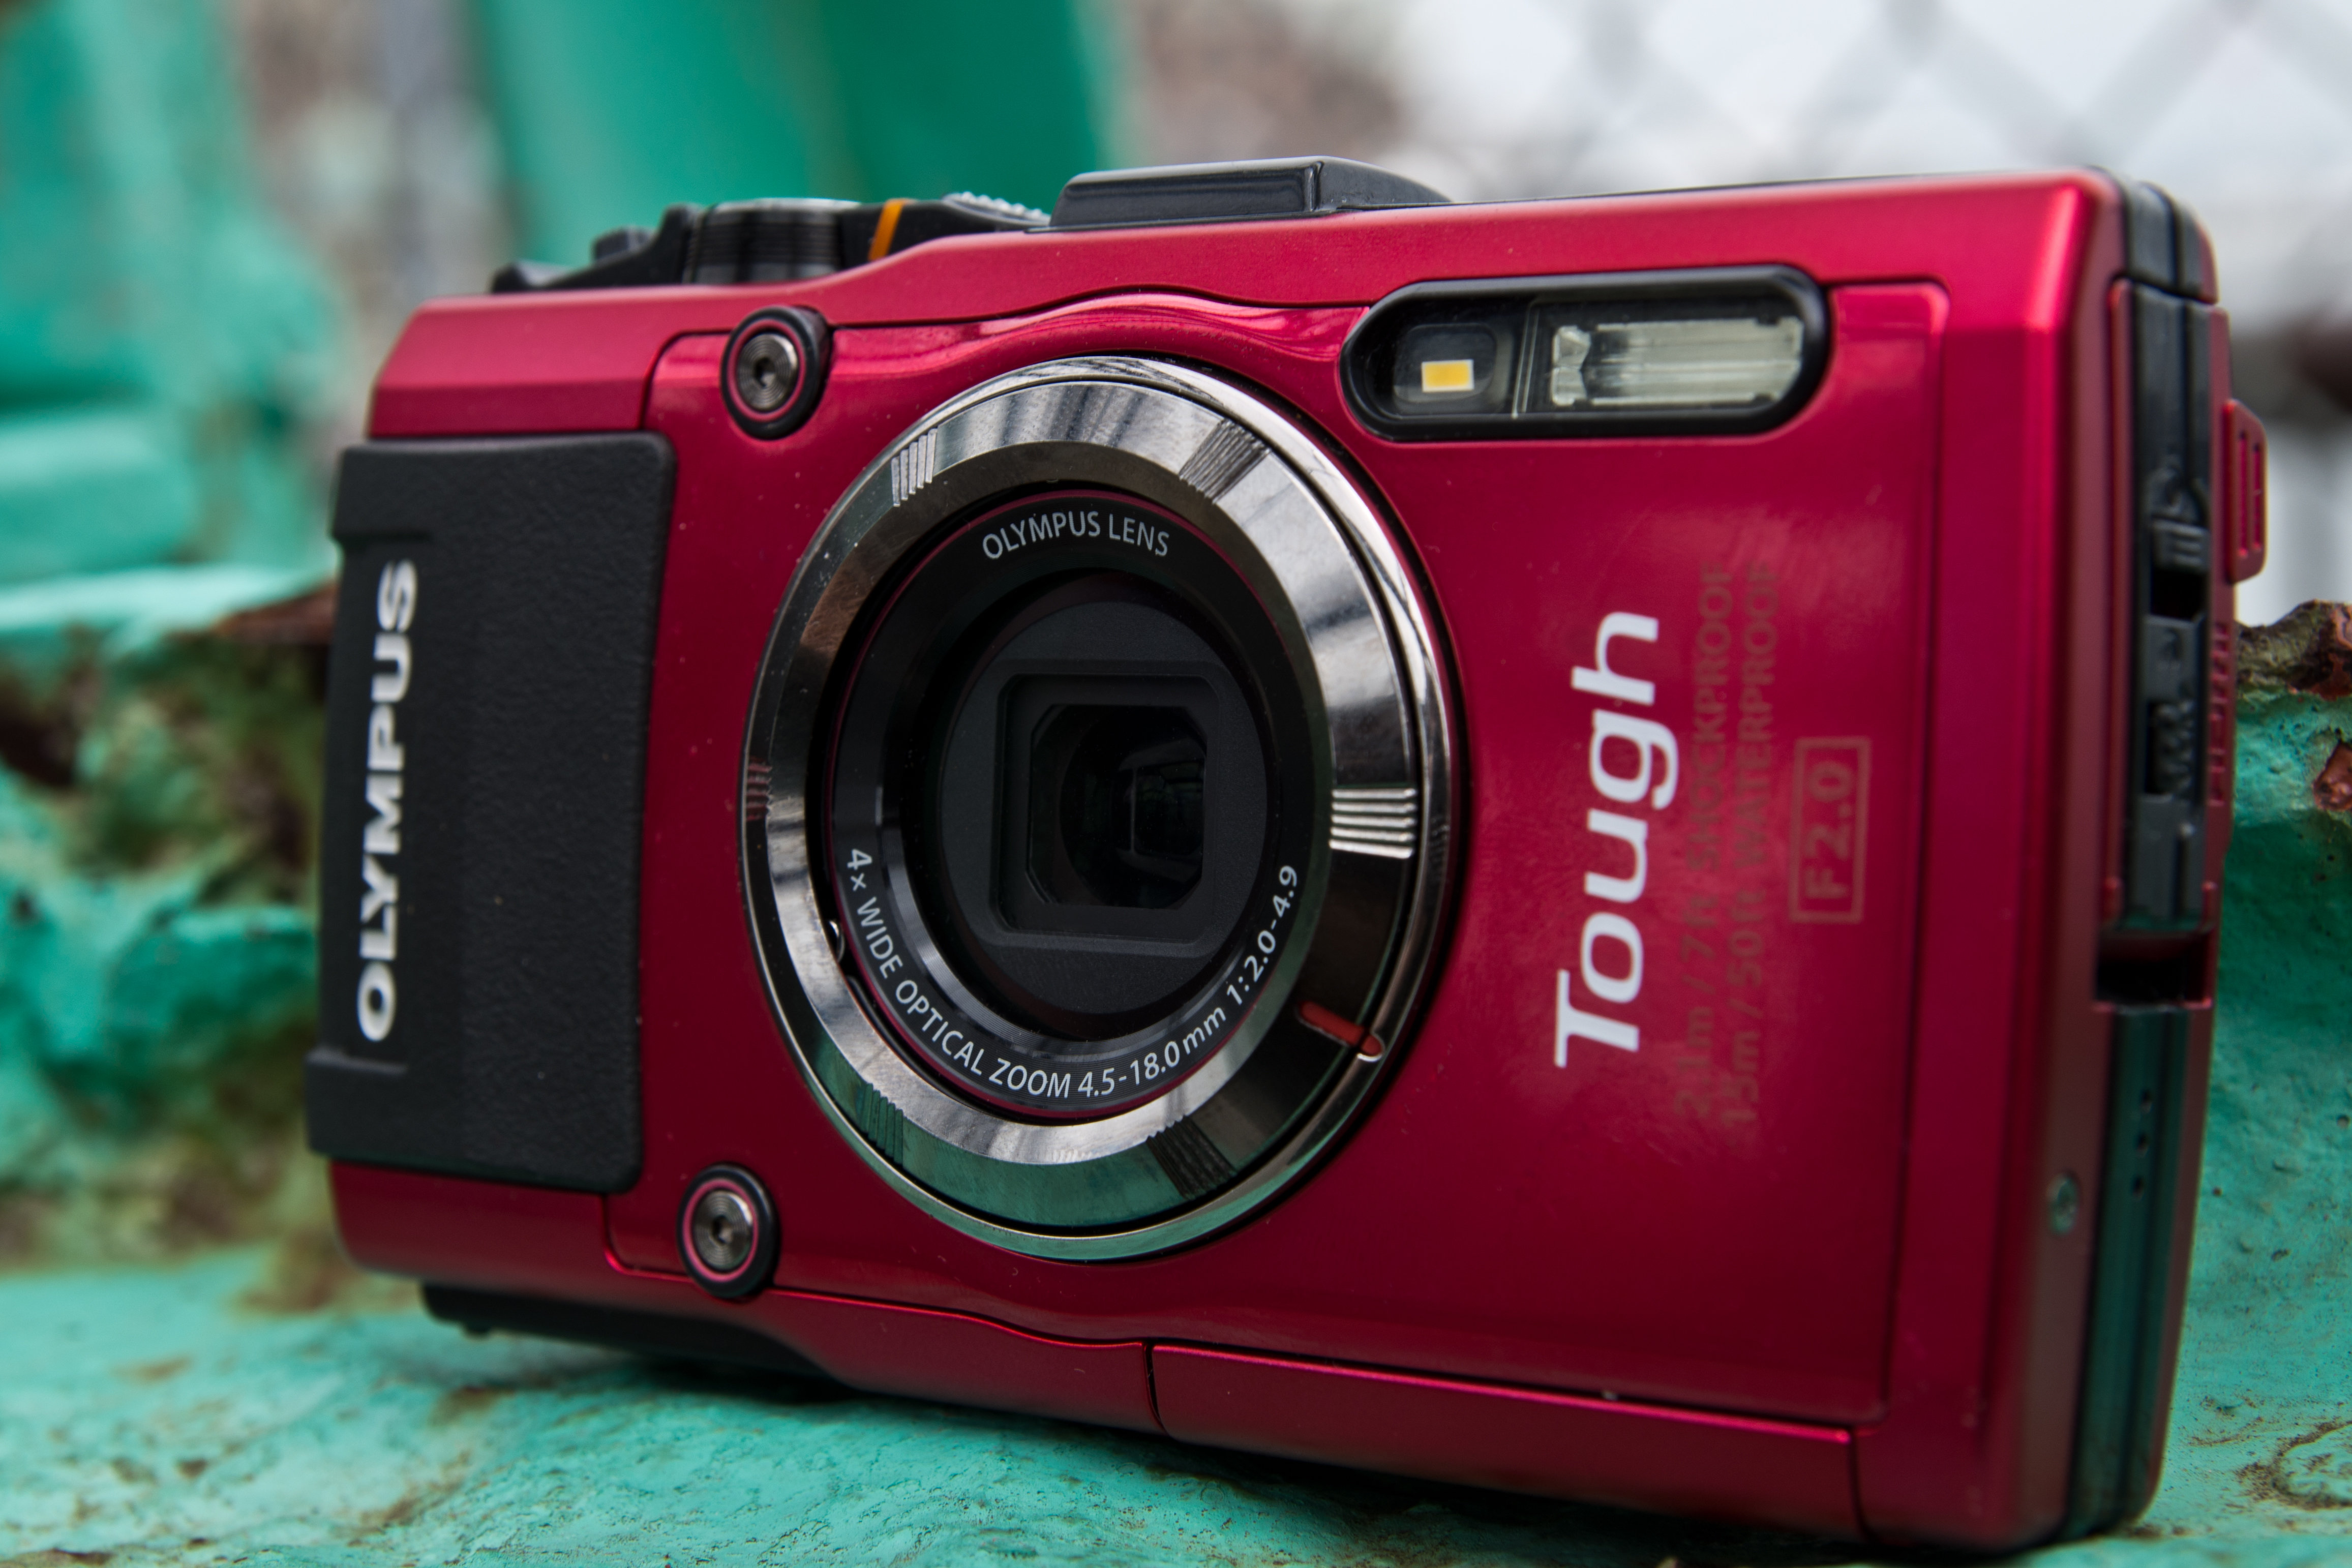 A picture of the Olympus TG-3's exterior casing.